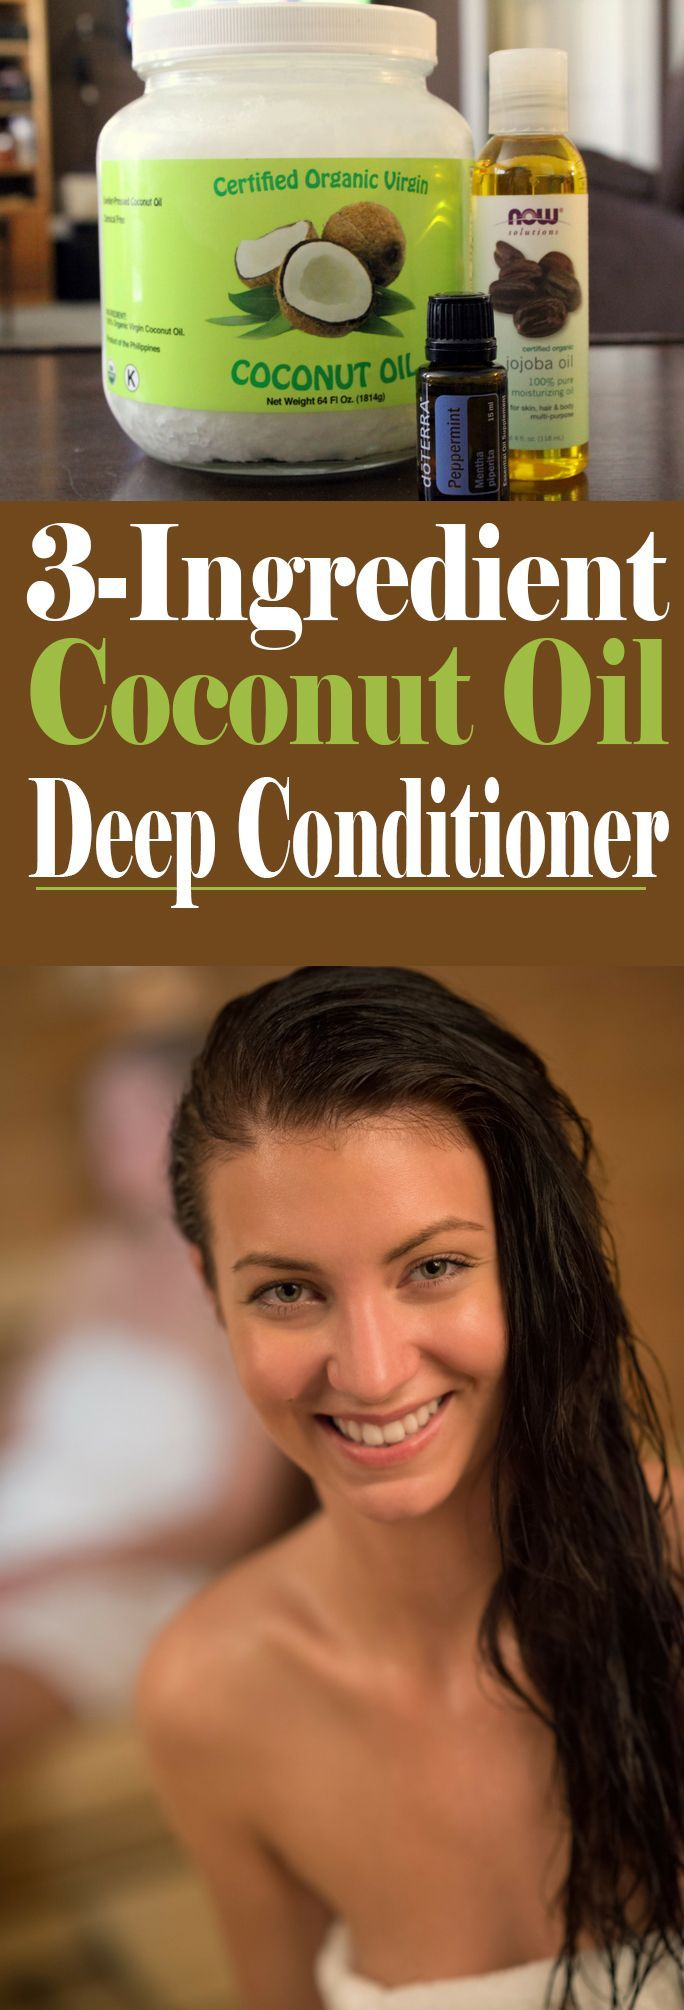 Treat your hair to a DIY Coconut Oil Deep Conditioner | made with only 3 ingredients!  homemadeforelle.com